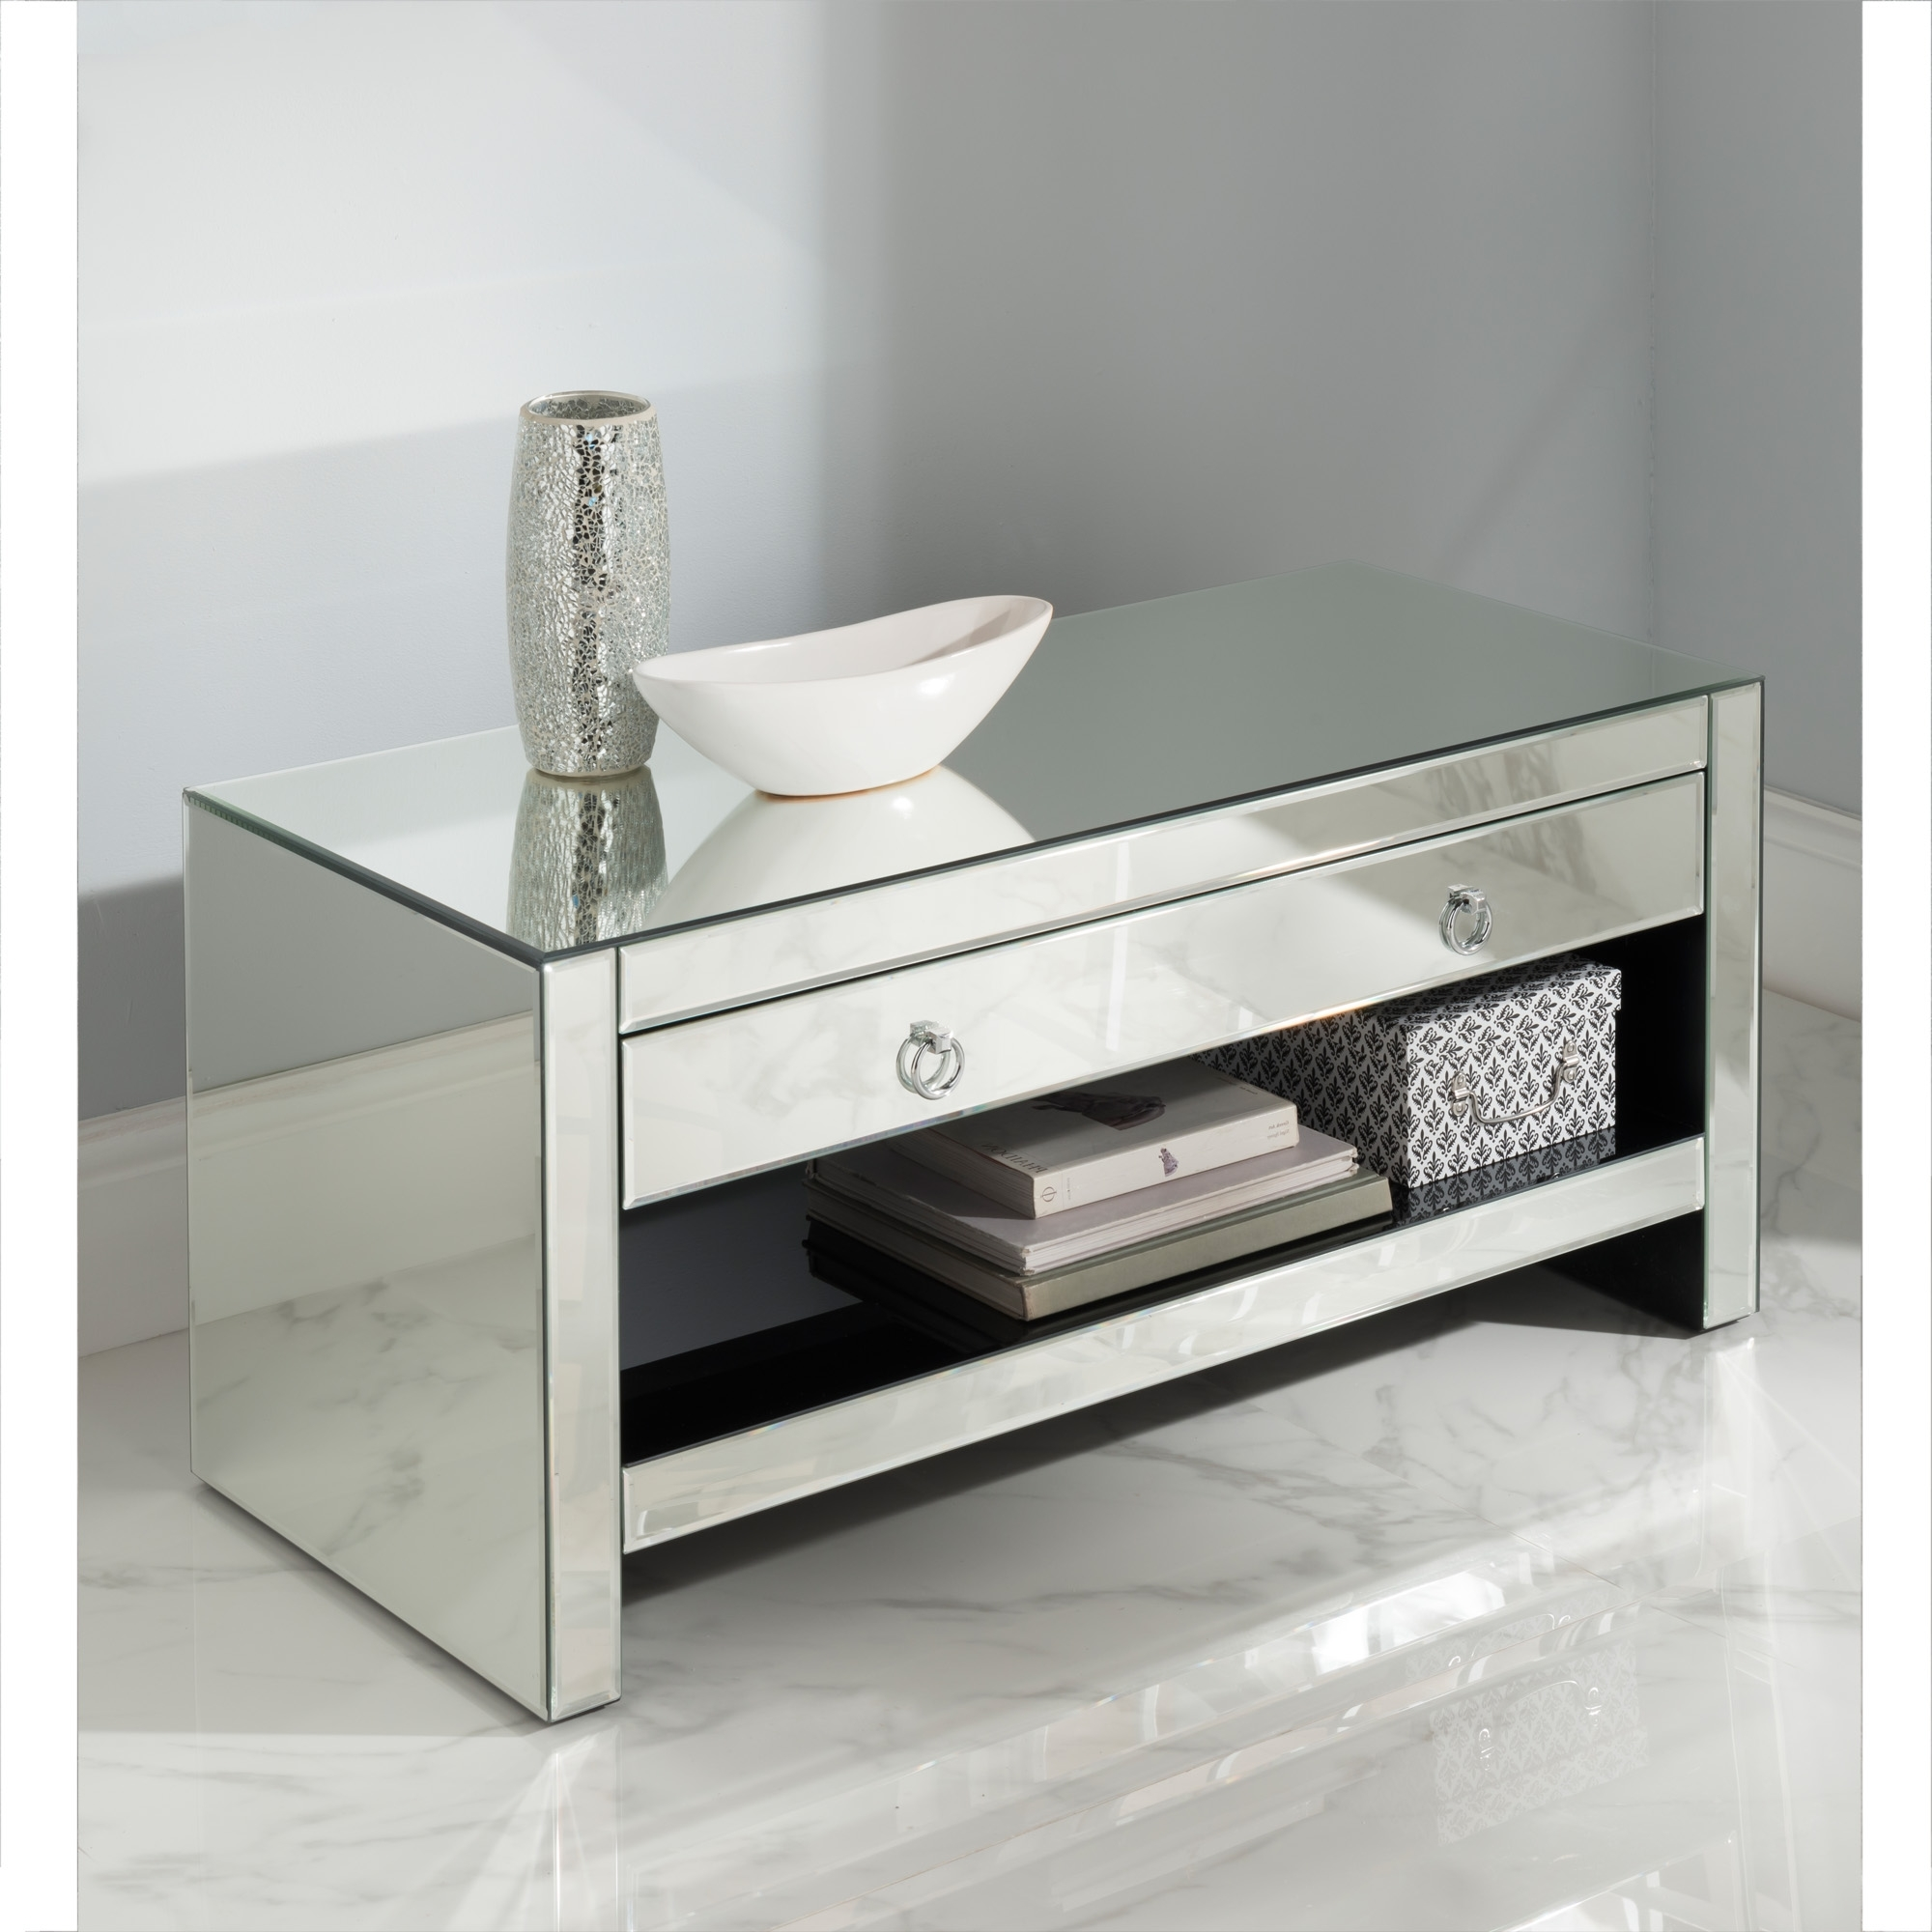 Mirrored Glass Kitchen Cabinets: Glass Venetian Furniture